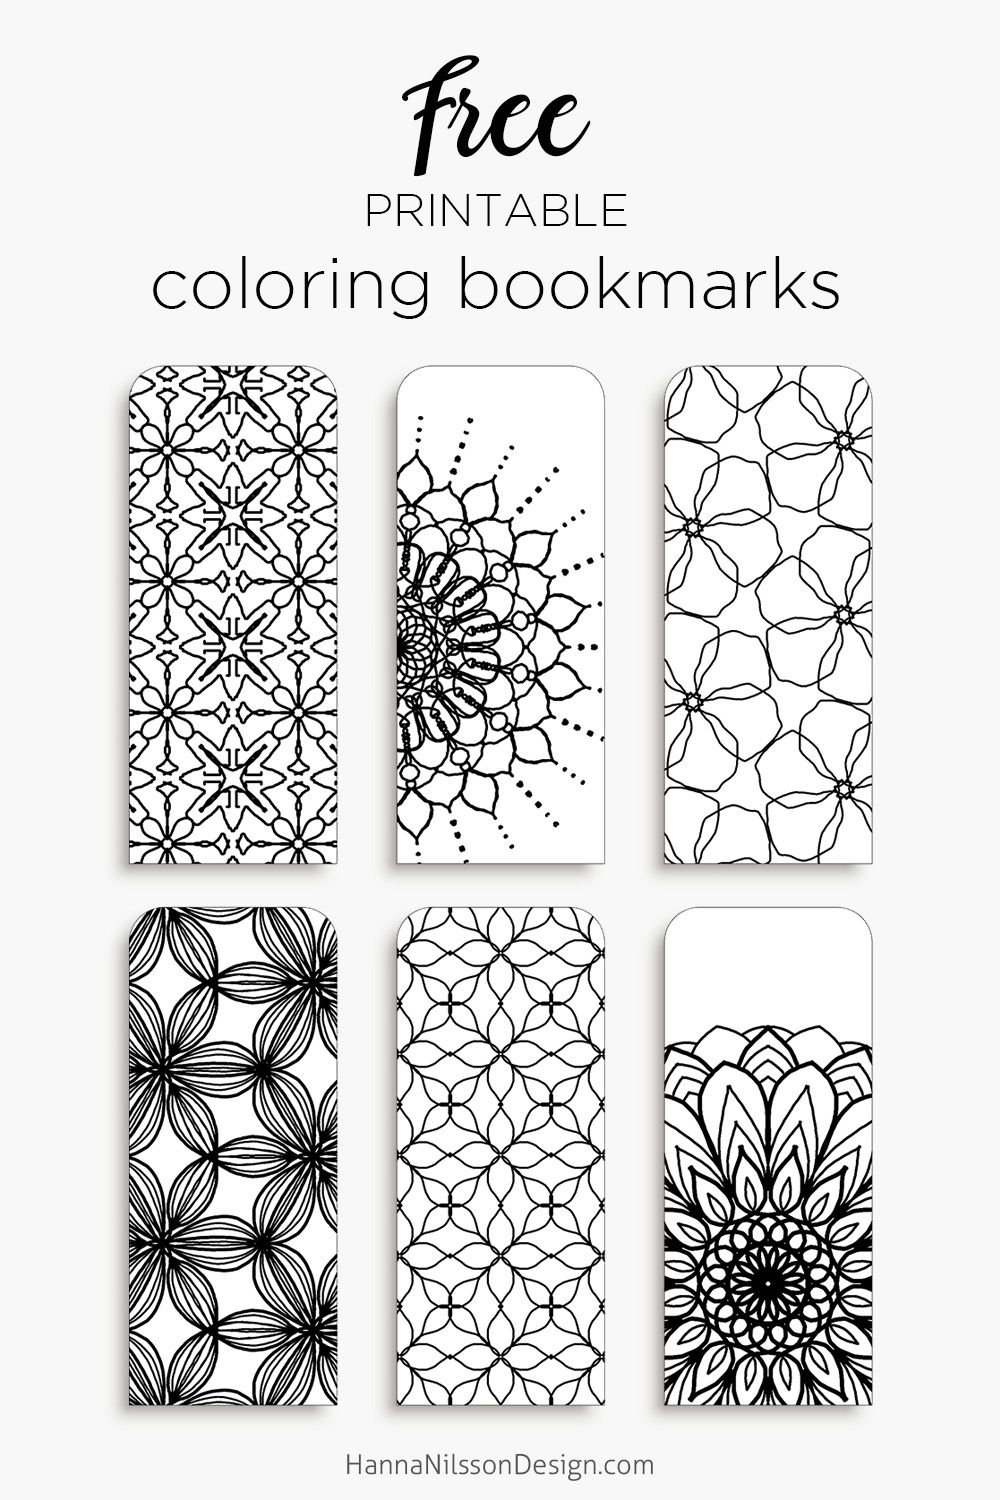 Cute Printable Bookmarks To Color